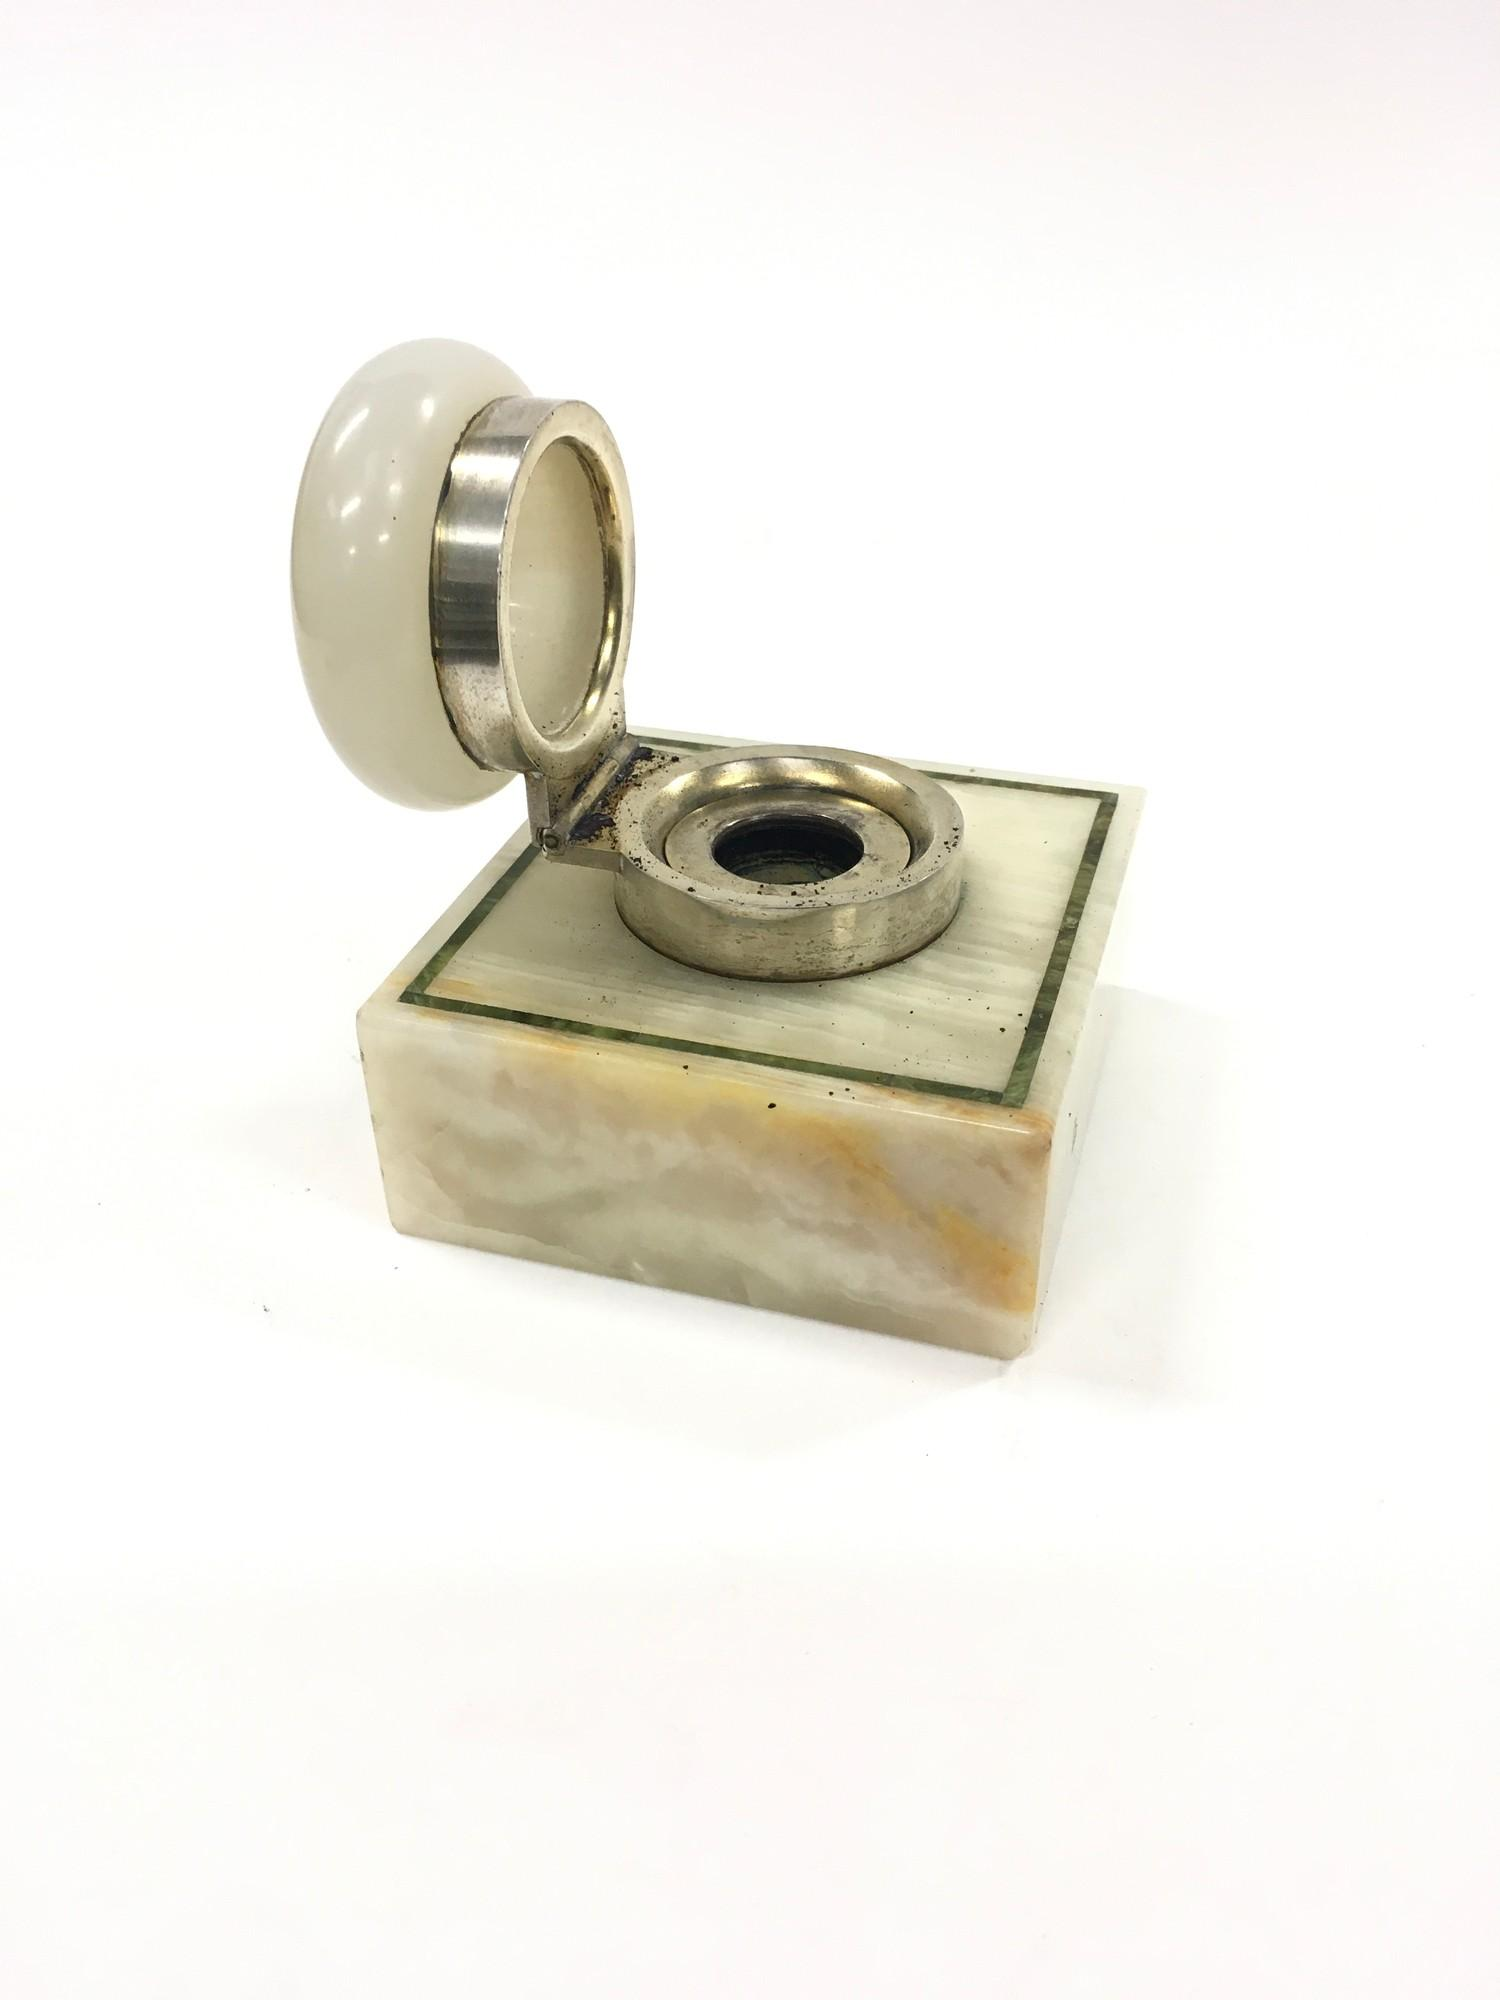 Silver & Onyx Art Deco Inkwell. - Image 2 of 2